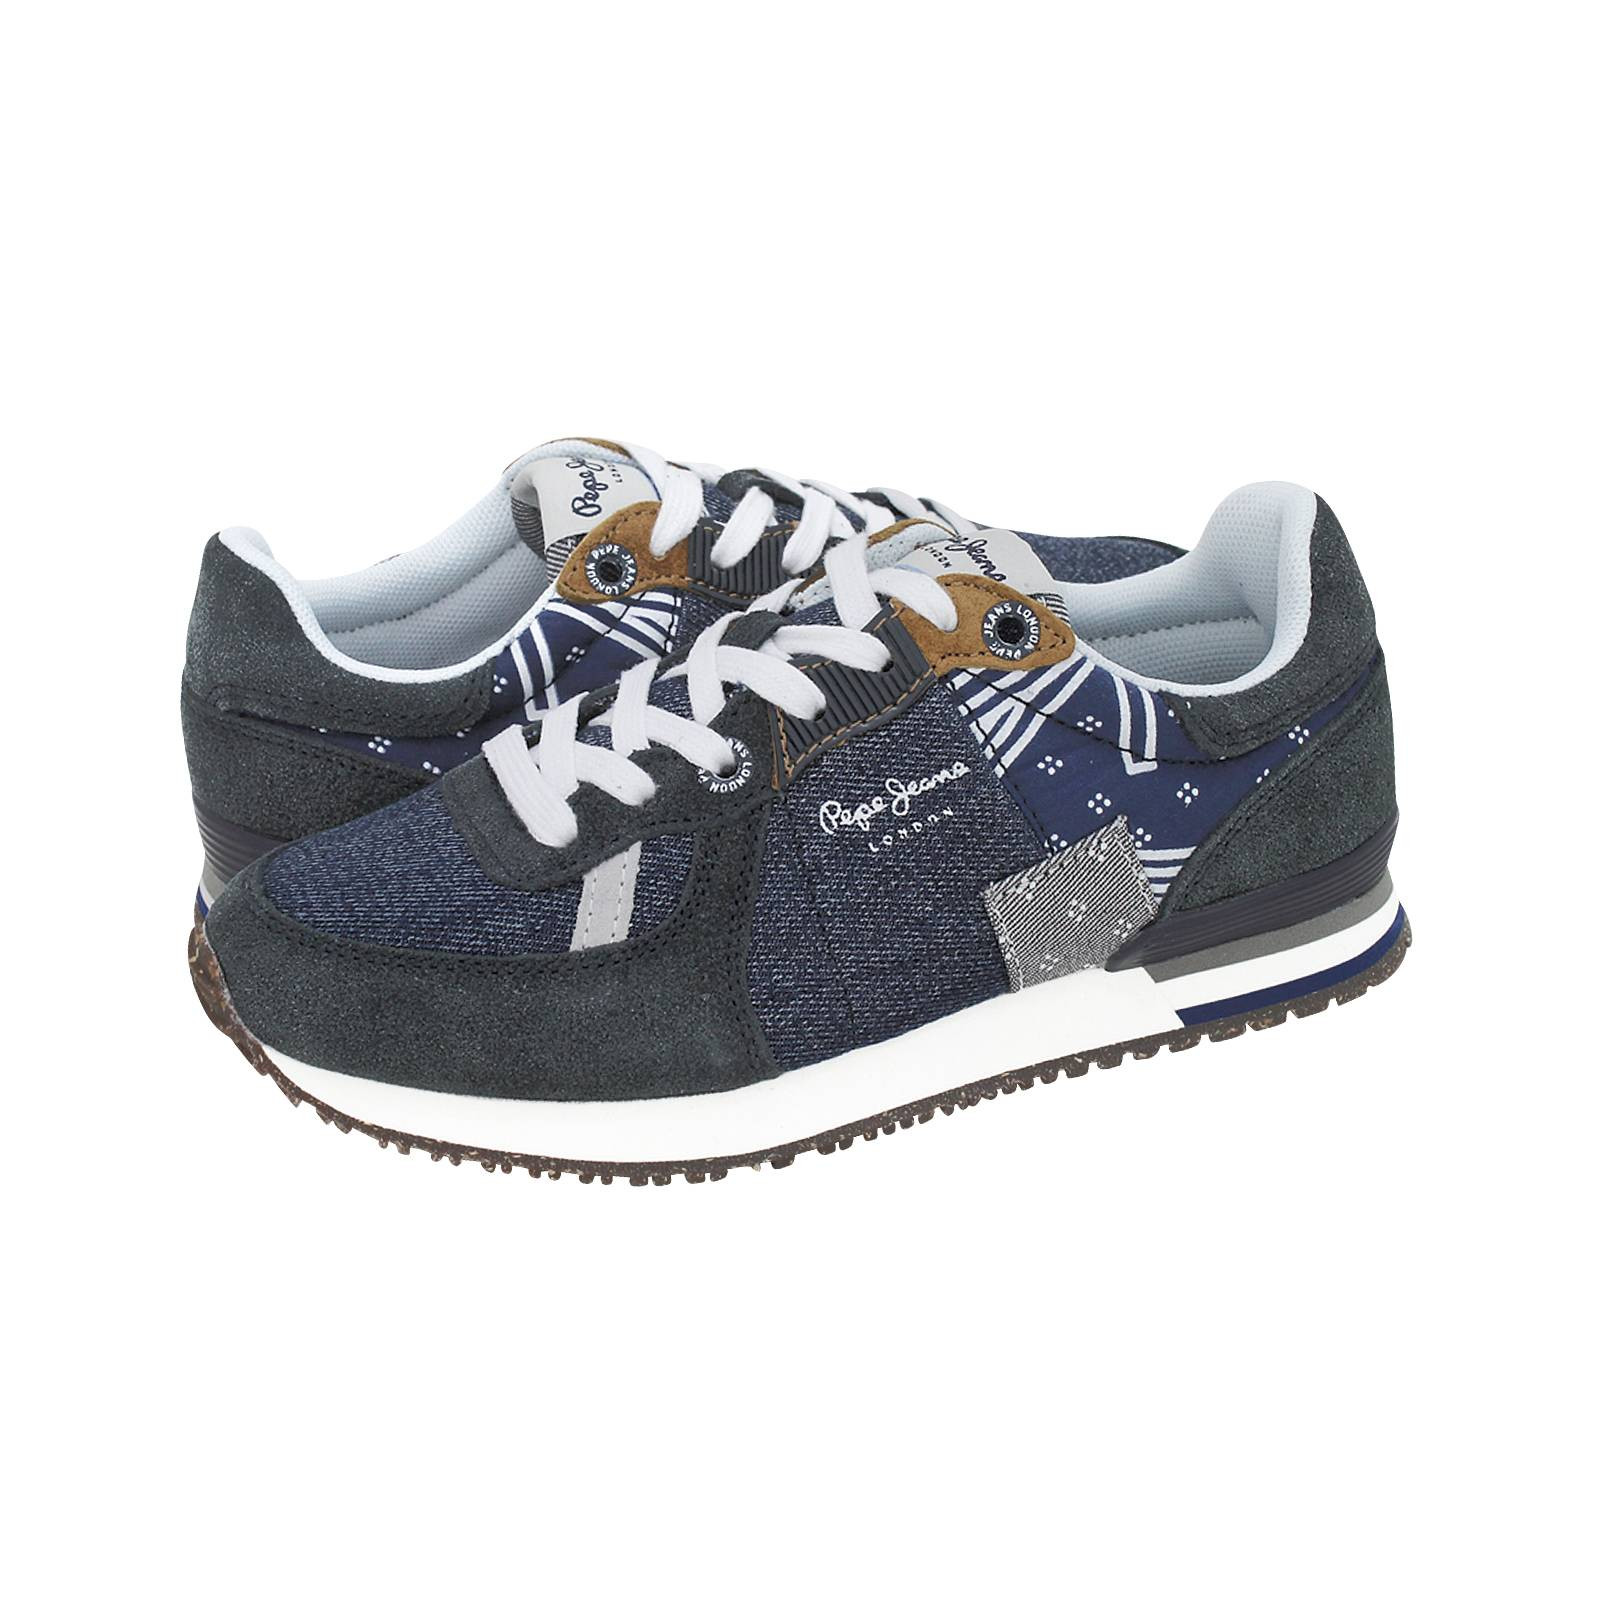 dbcda54e19 Childers - Παιδικά παπούτσια casual Pepe Jeans από υφασμα και ...